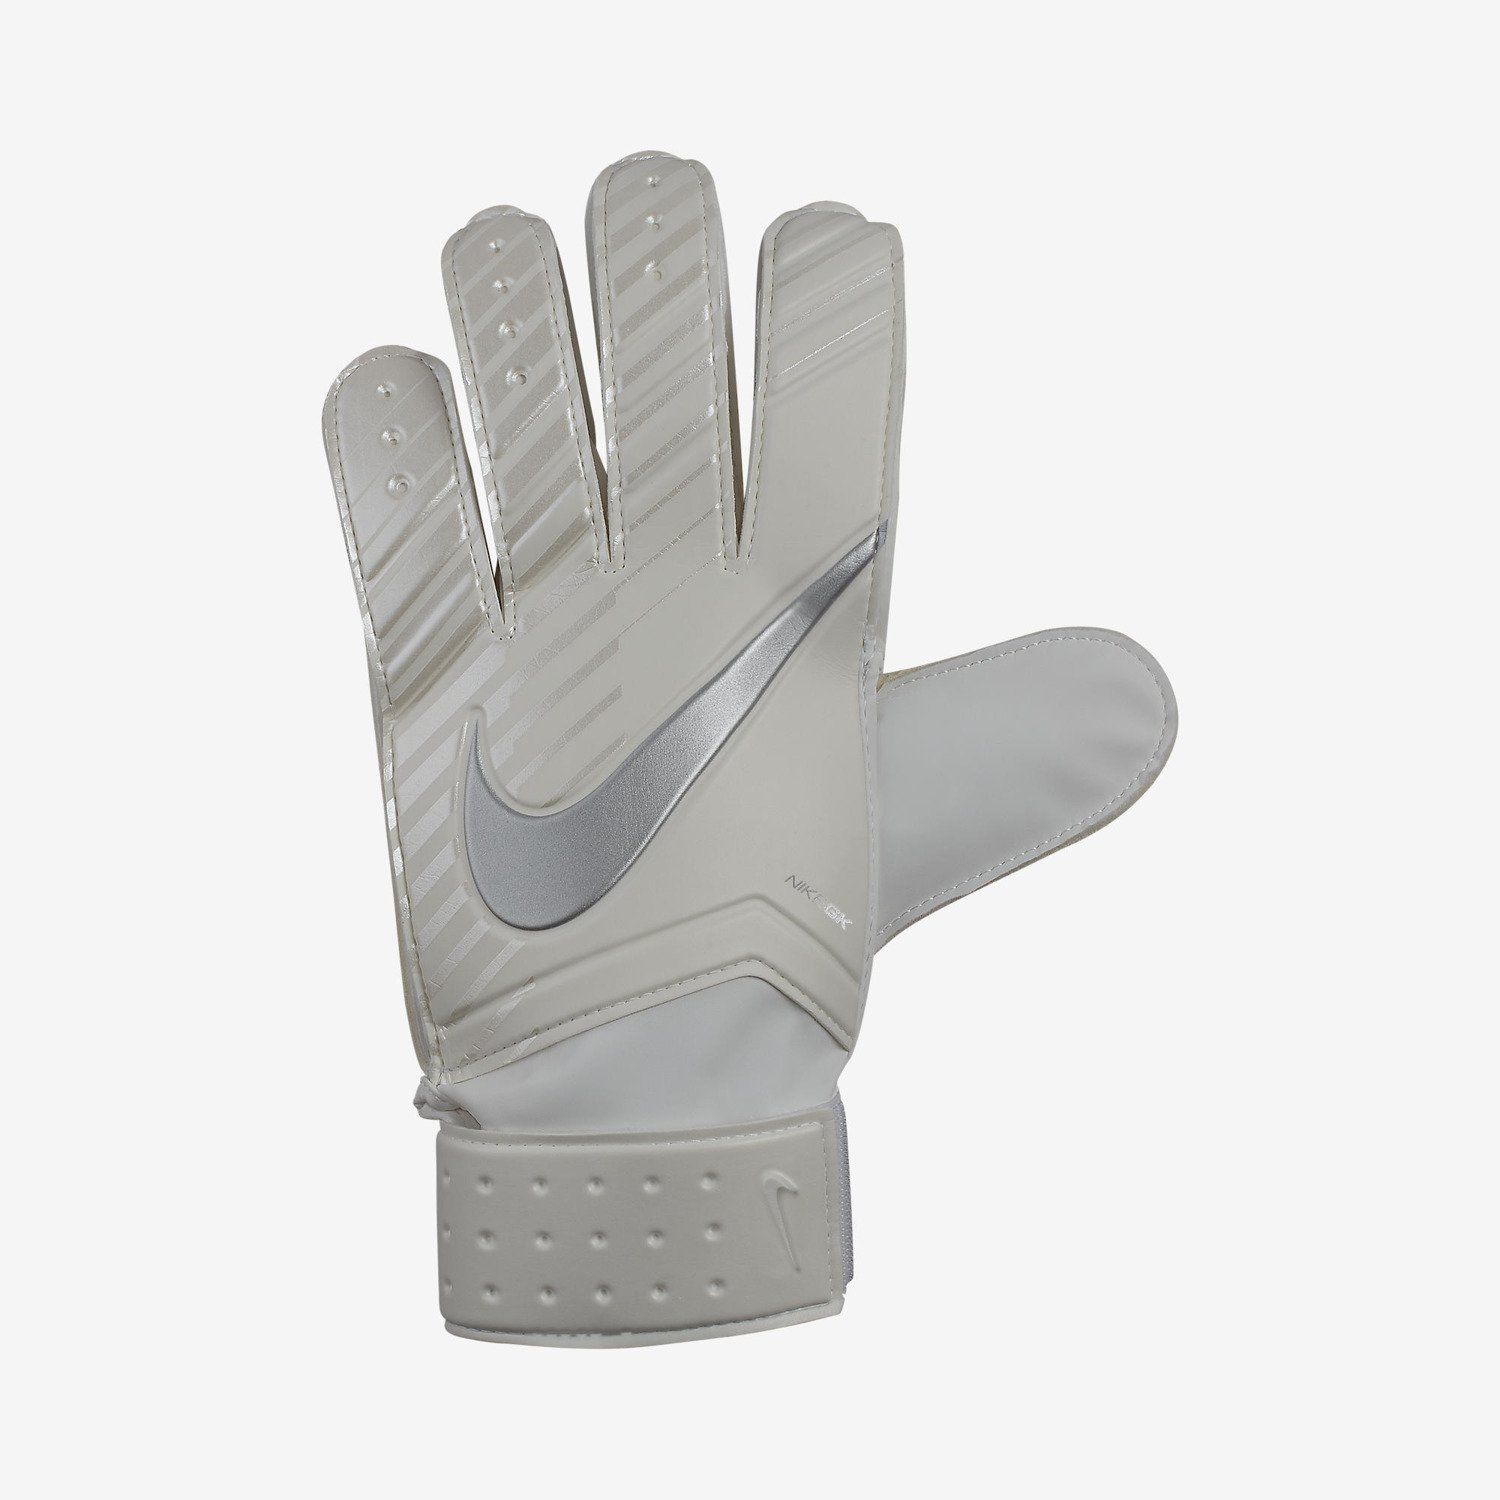 Rękawice bramskarskie Nike Match Goalkeeper Football Gloves GS0344 100